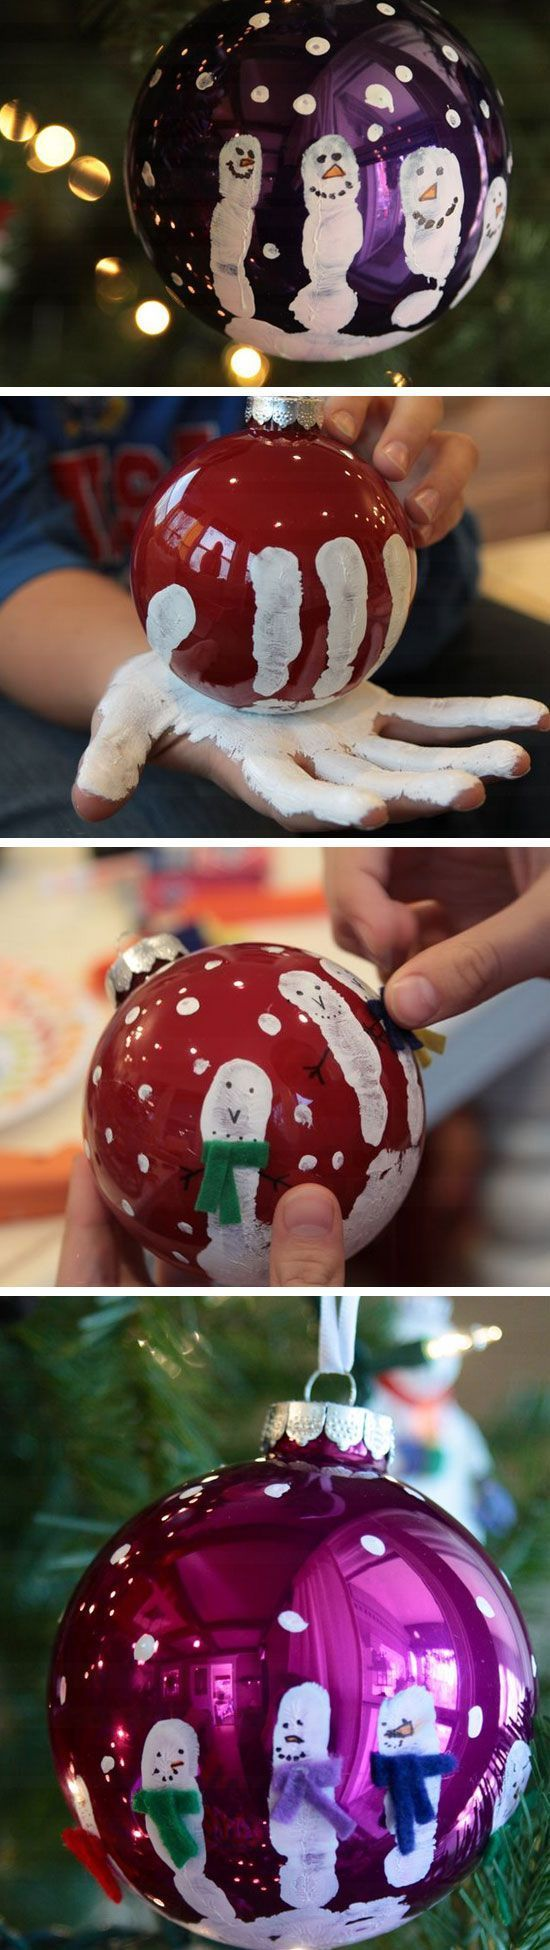 29 Diy Christmas Crafts That Kids & Adults Will Love To Make  Handmade  Christmas Decorations, Reindeer Ornaments And Diy Christmas Tree